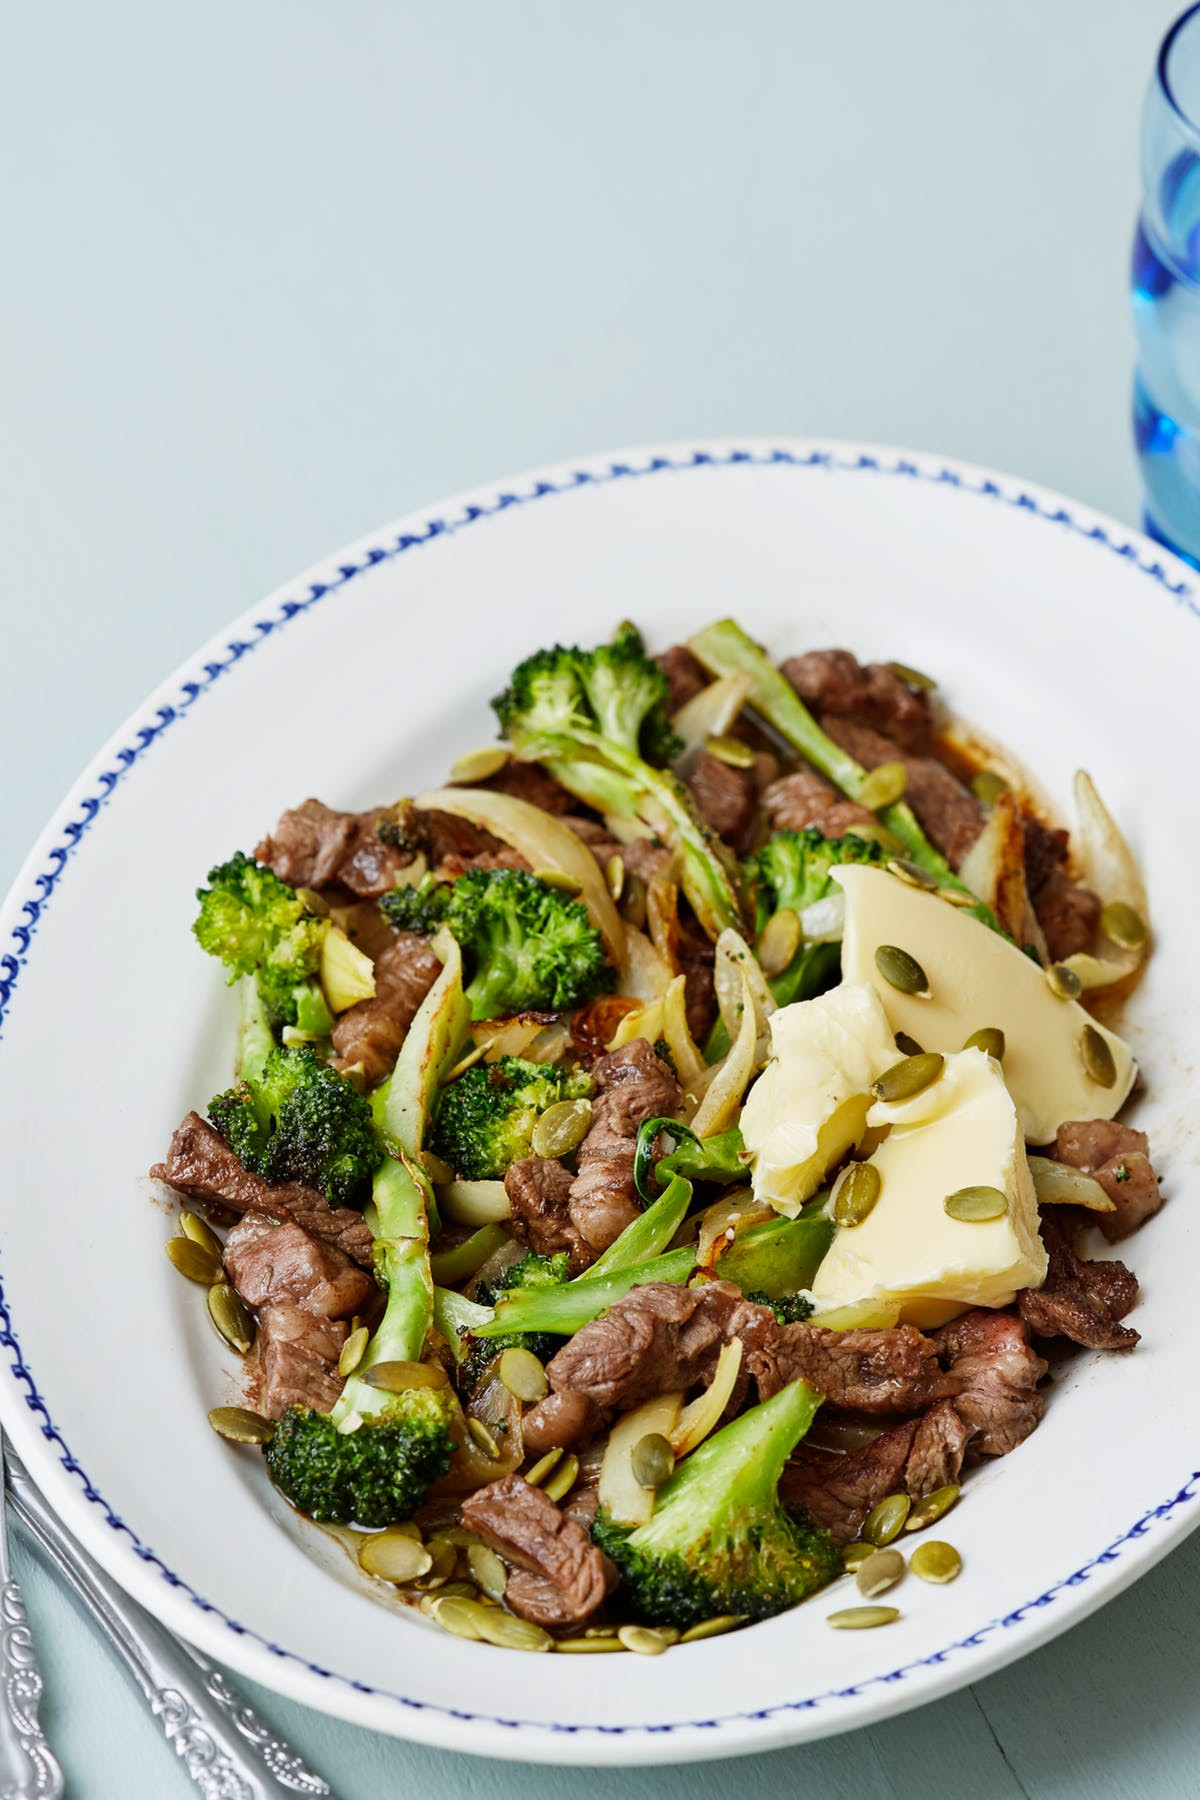 Keto Beef And Broccoli  Keto Steak and Broccoli Stir Fry with Pumpkin Seeds Diet